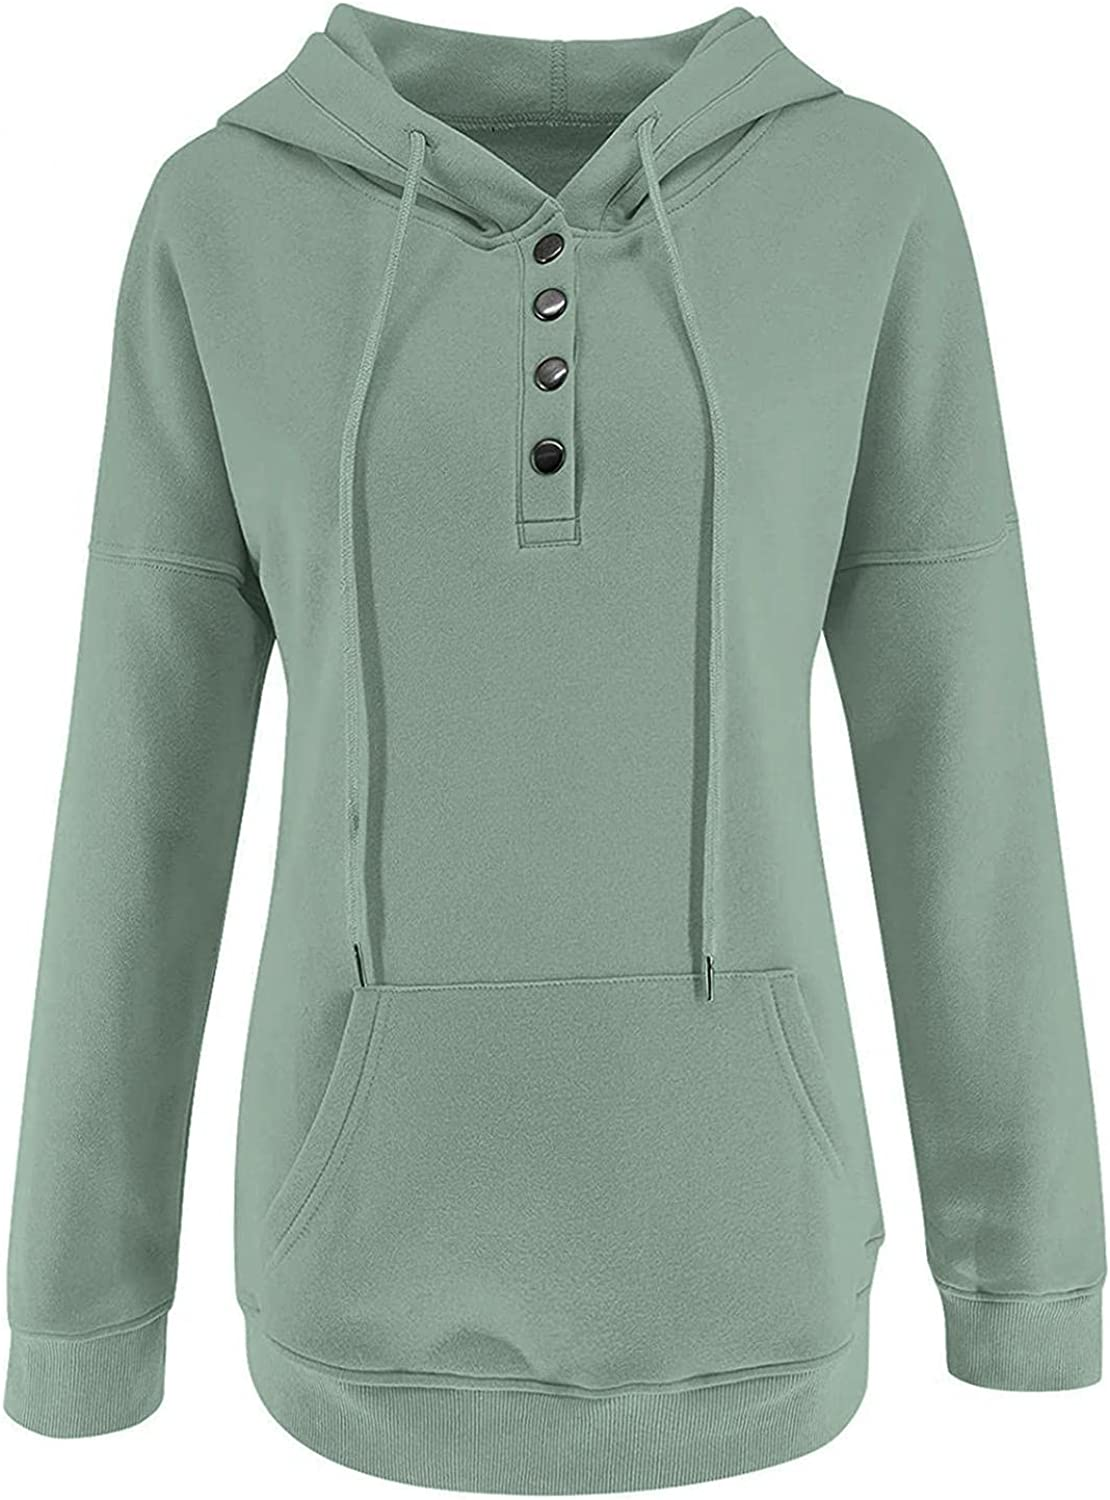 felwors Hoodies for Women, Womens Color Block Pullover Hoodies Casual Button Down Long Sleeve Sweatshirts with Pockets